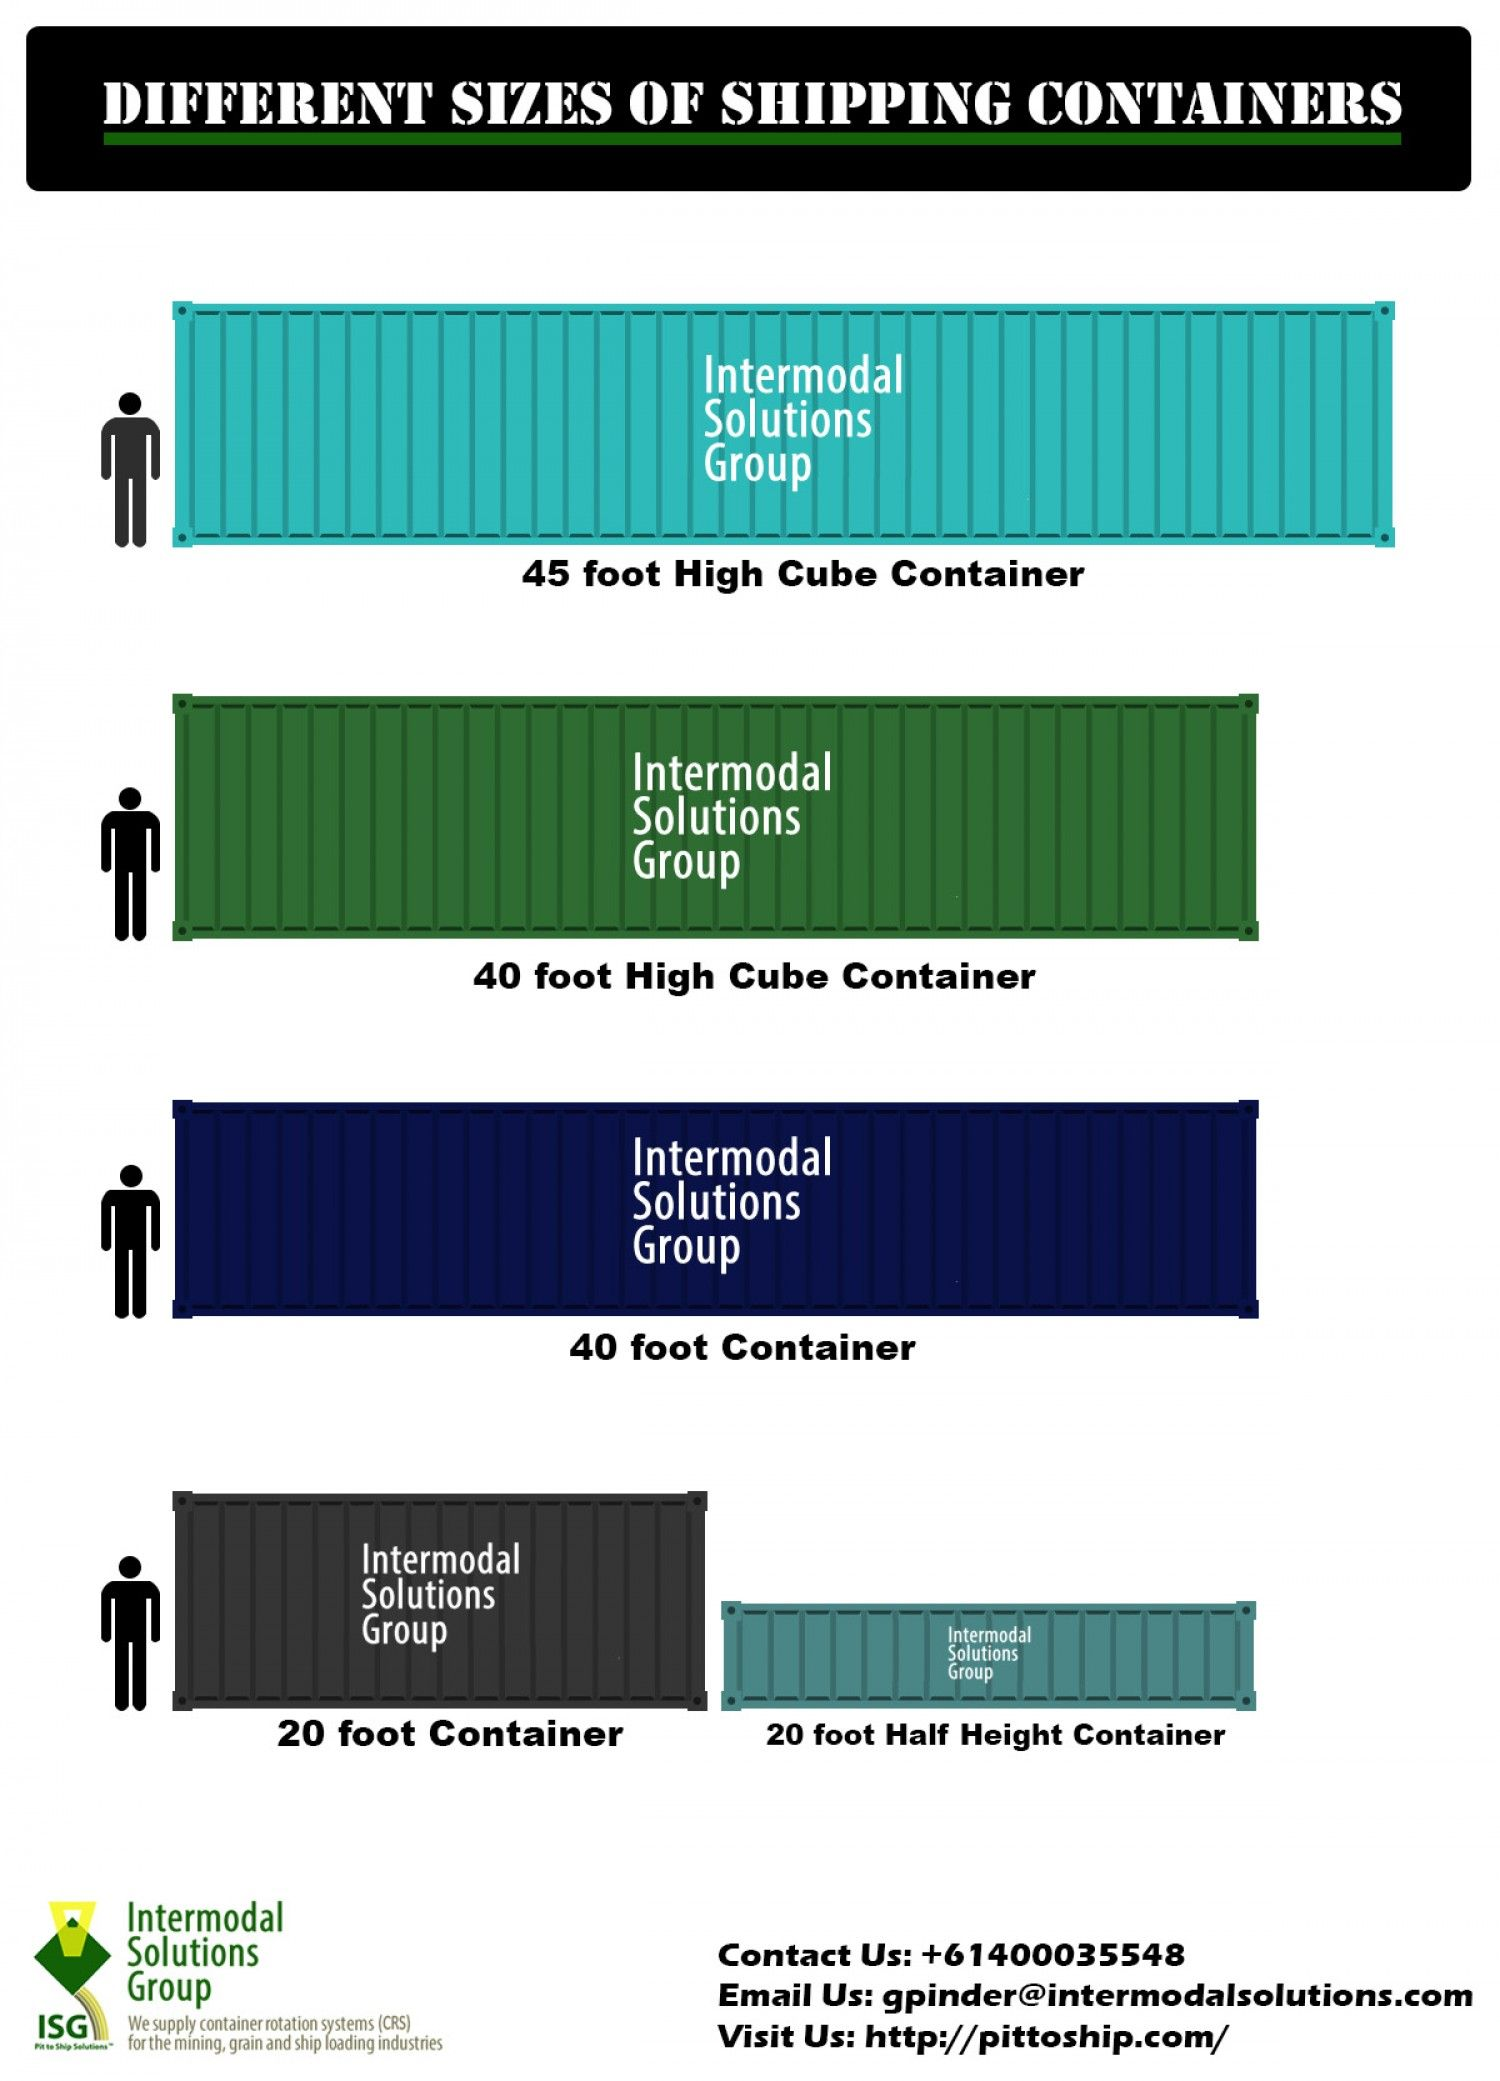 Different Sizes Of Shipping Containers Intermodal Solutions Group Pit To Ship Solutions Australia Shipping Container Sizes Shipping Container Container